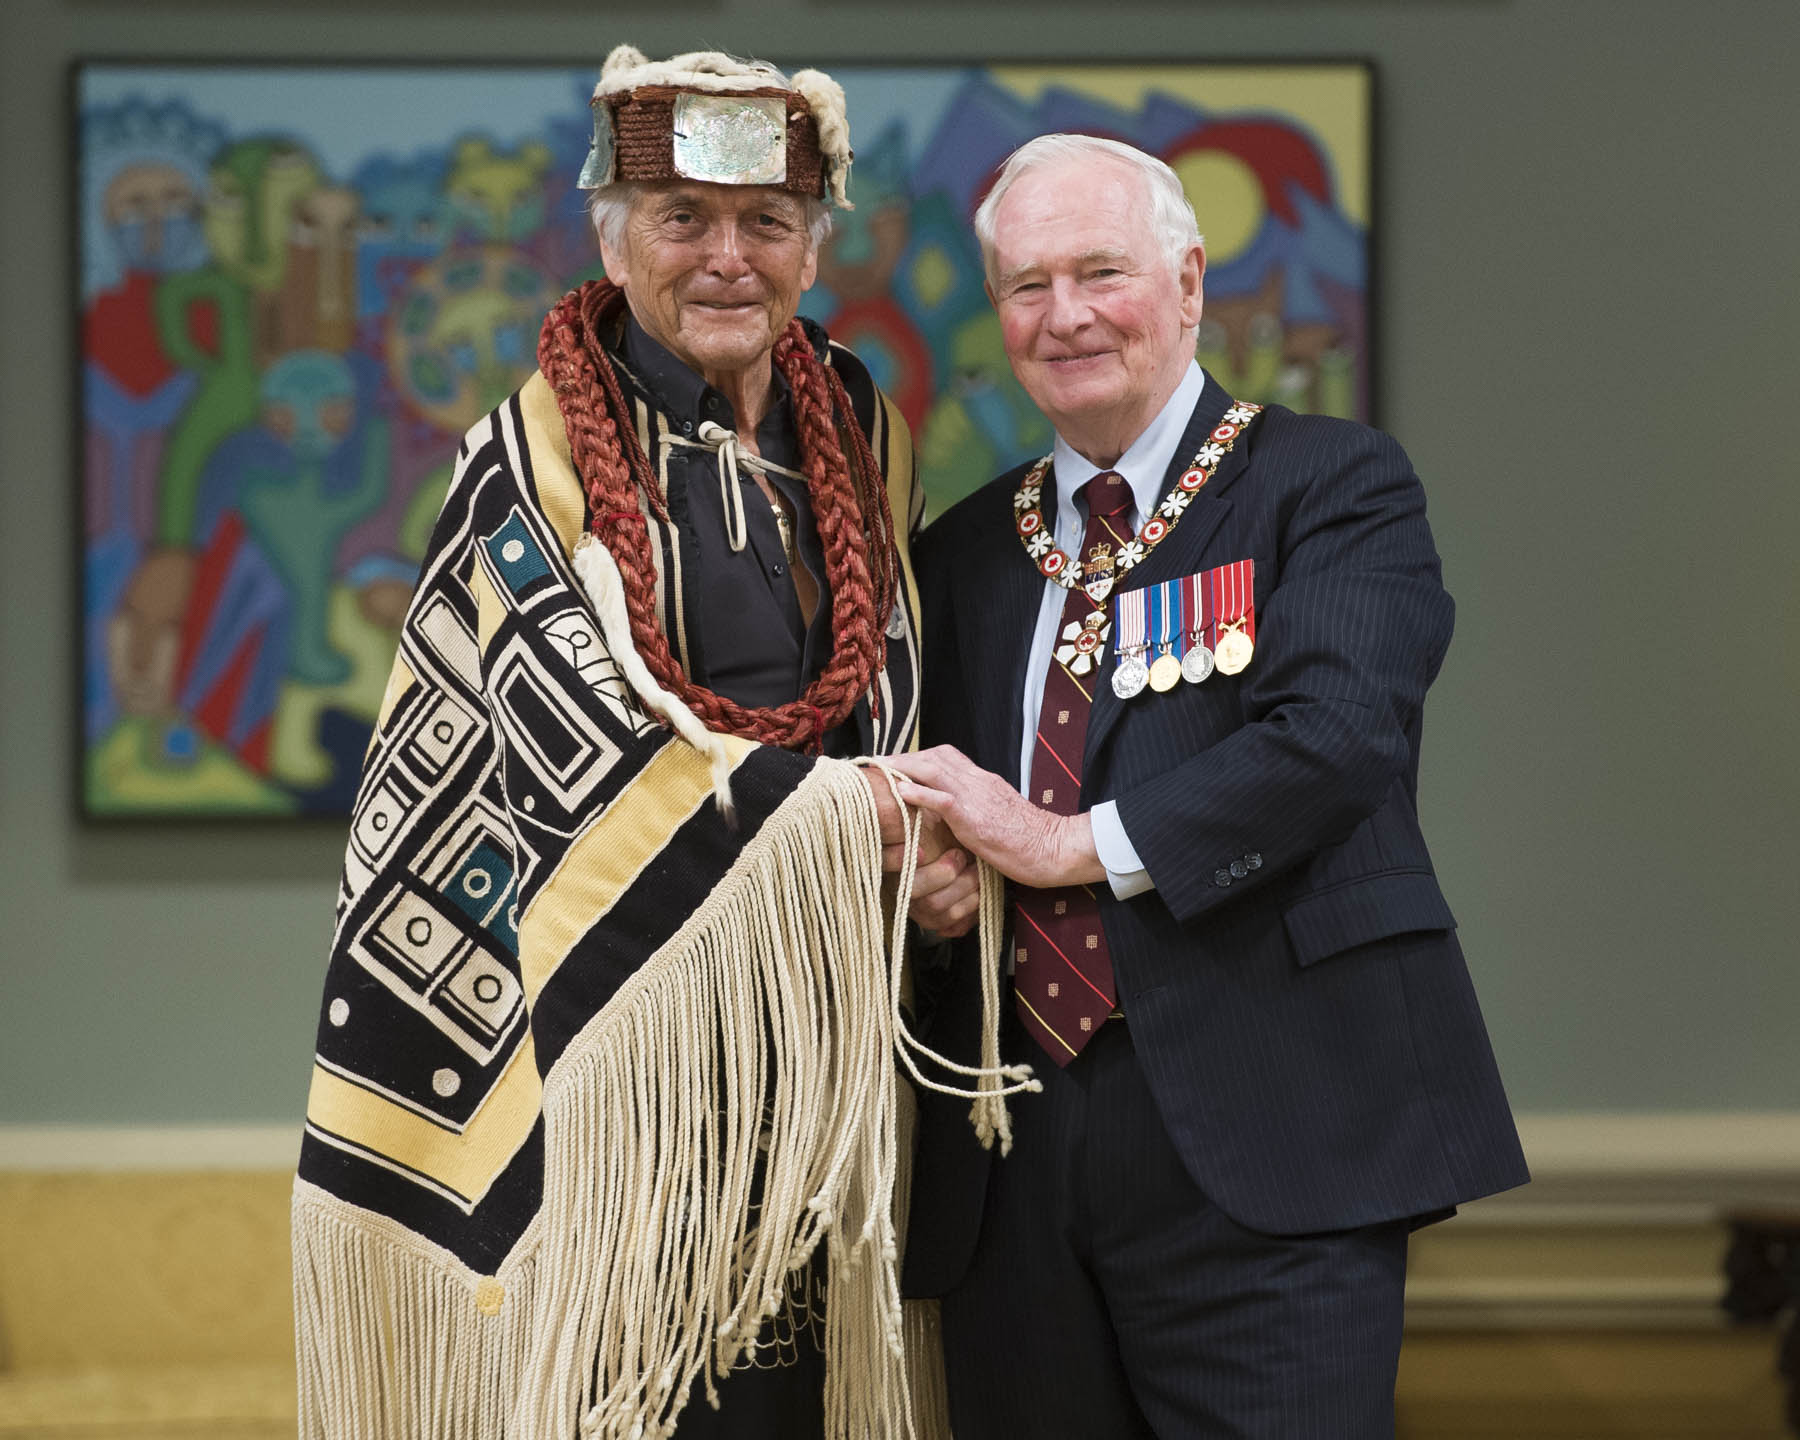 Chief Bill Cranmer received the Sovereign's Medal for Volunteers. Dedicated to the preservation of Indigenous culture, Chief Cranmer was instrumental in repatriating potlatch artifacts that were confiscated by the Canadian government in the 1920s, and in founding two cultural centres in British Columbia to preserve and exhibit these sacred items.